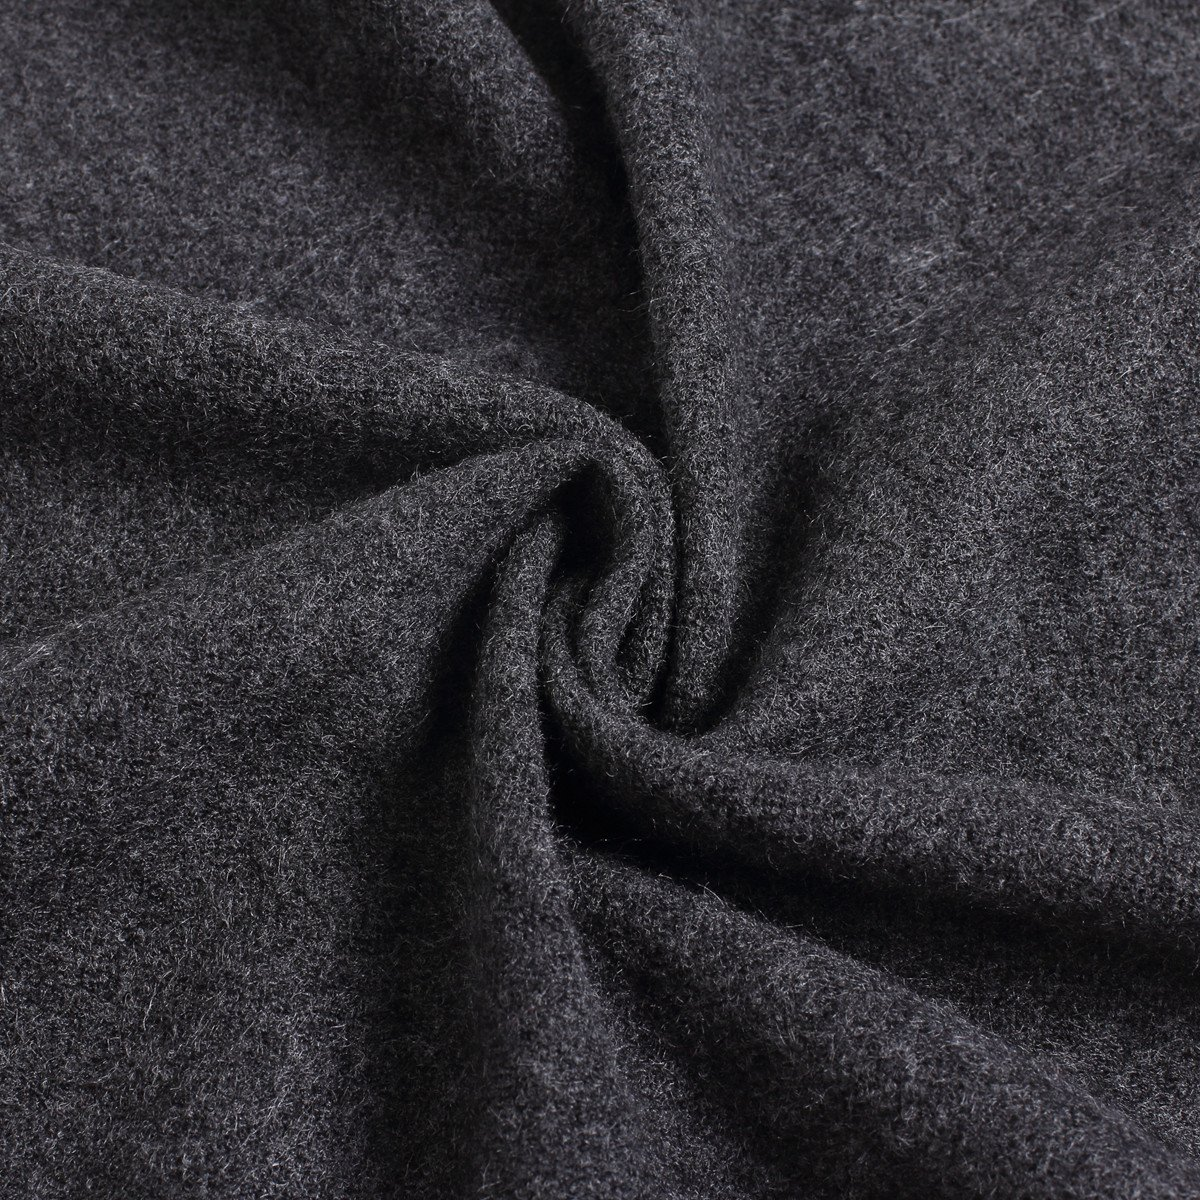 FULLRON Men Winter Scarf Long Cashmere Scarves, Grey Cotton Scarf for Men by FULLRON (Image #7)